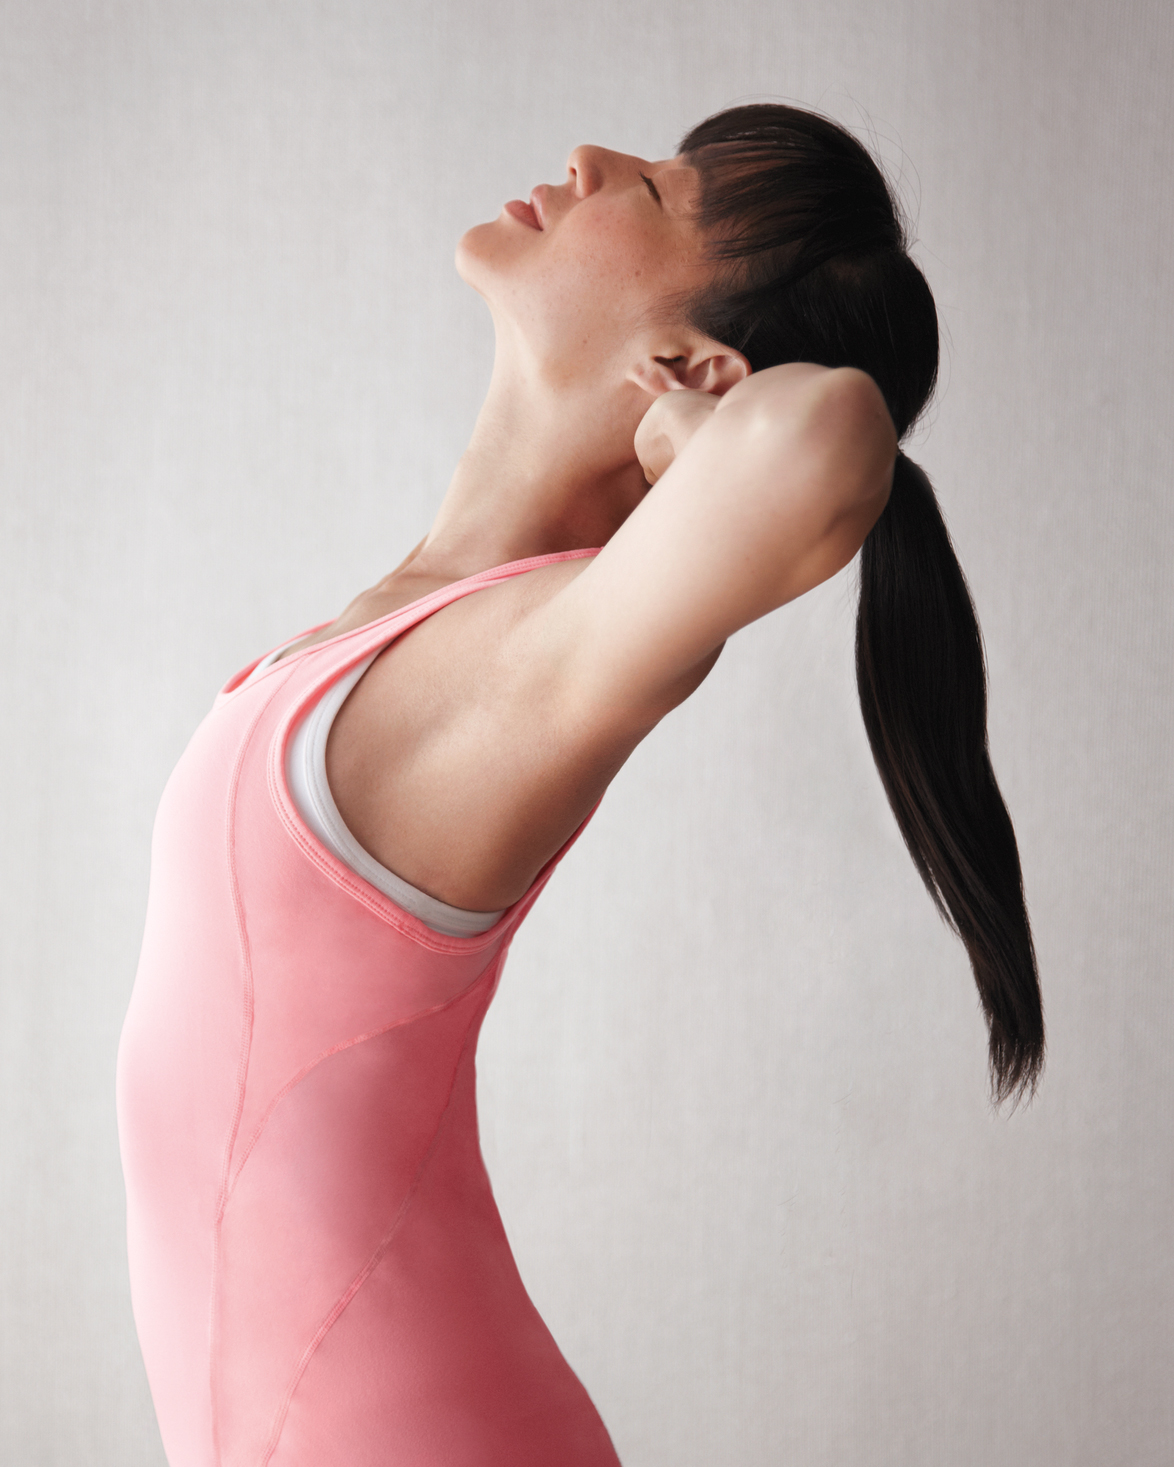 woman in pink stretching